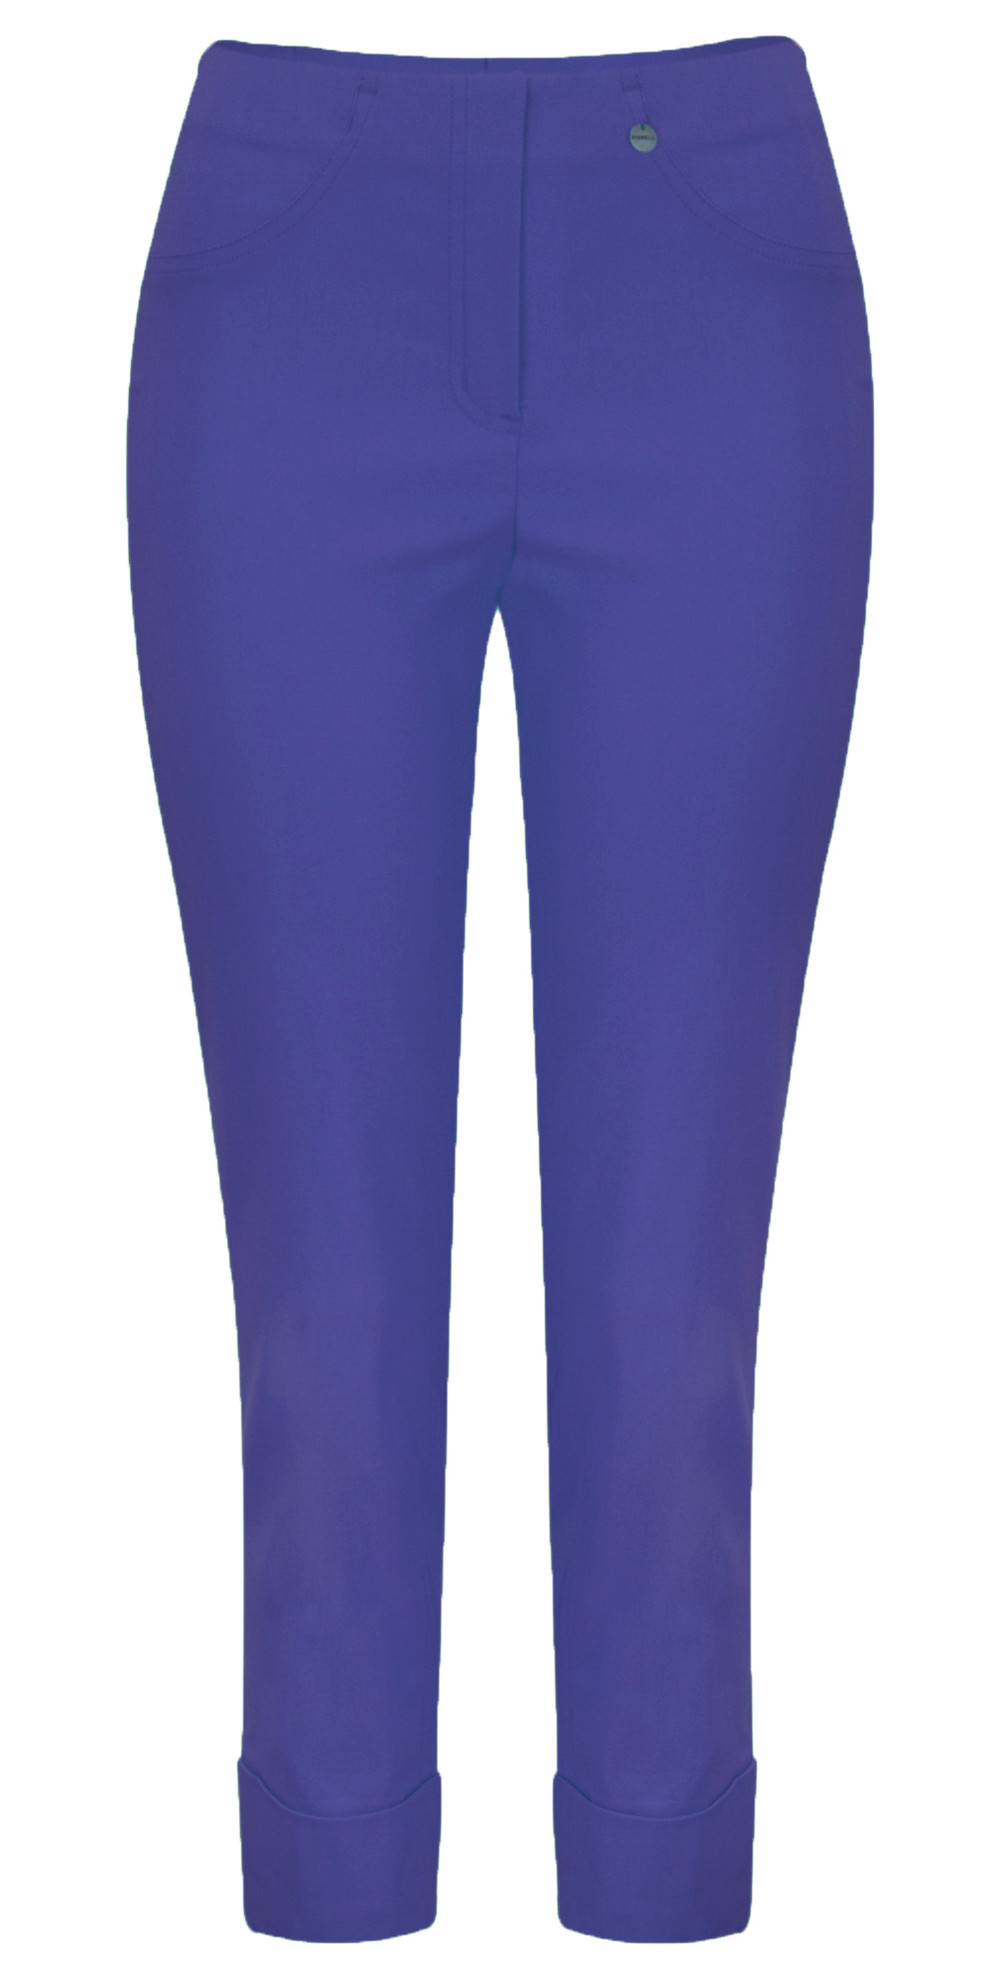 Bella 09 Royal Blue Ankle Length 7/8 Cuff Trouser main image